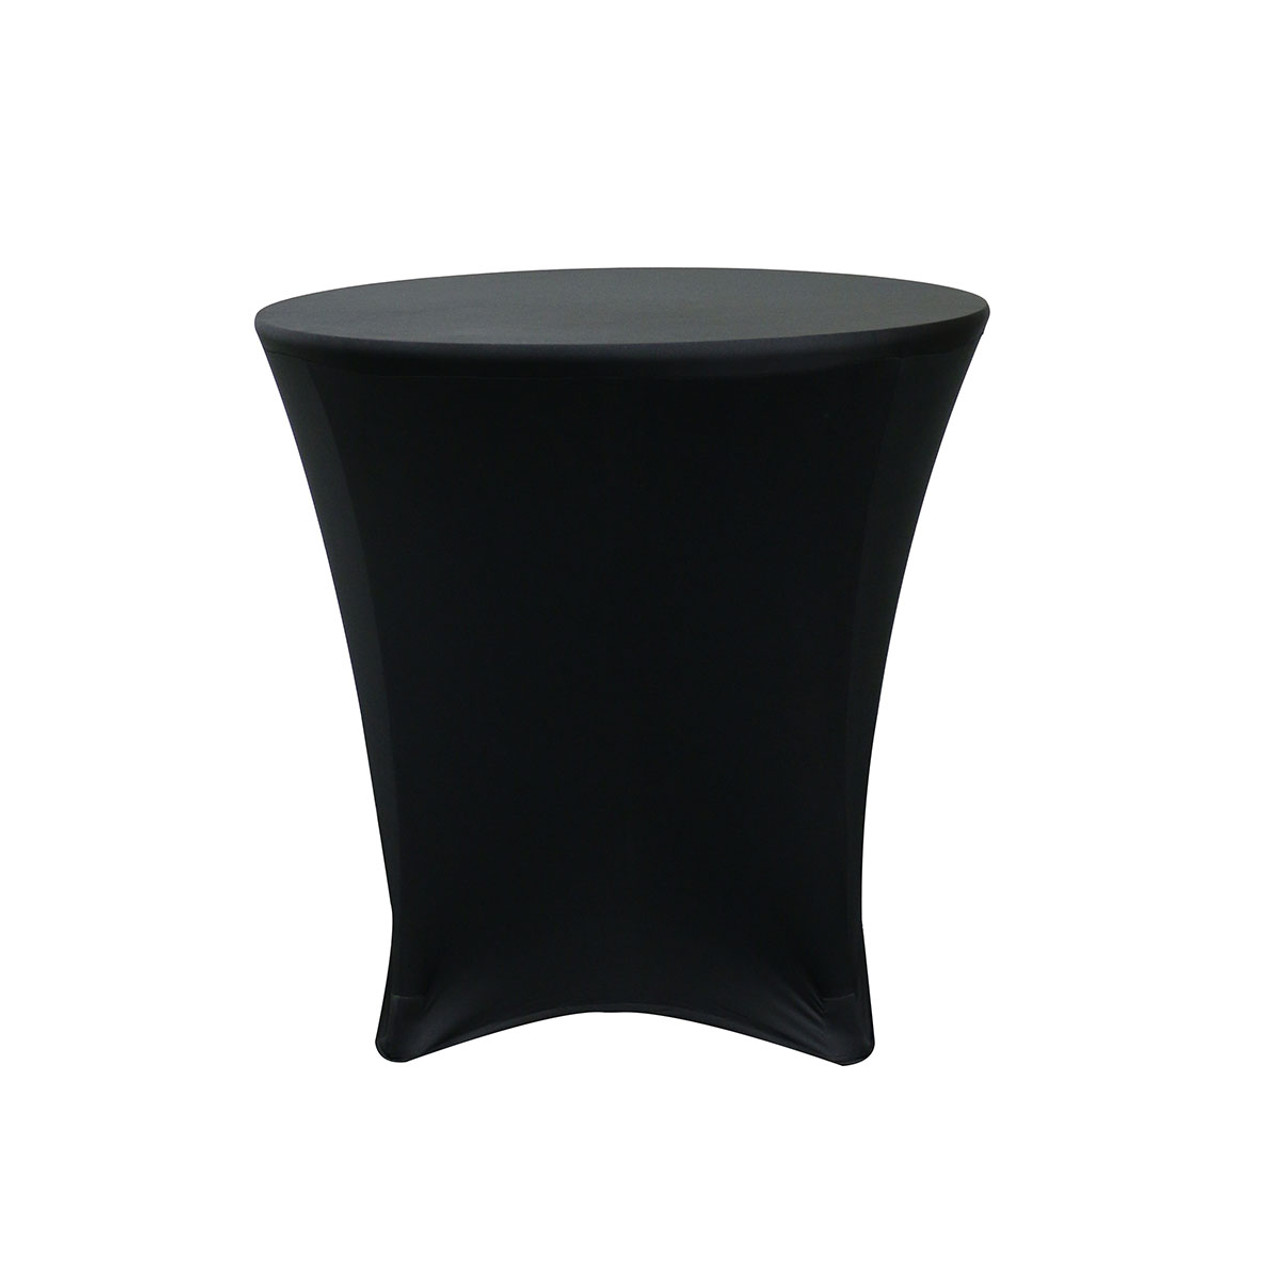 30 X 30 Inch Lowboy Cocktail Round Stretch Spandex Table Cover Black